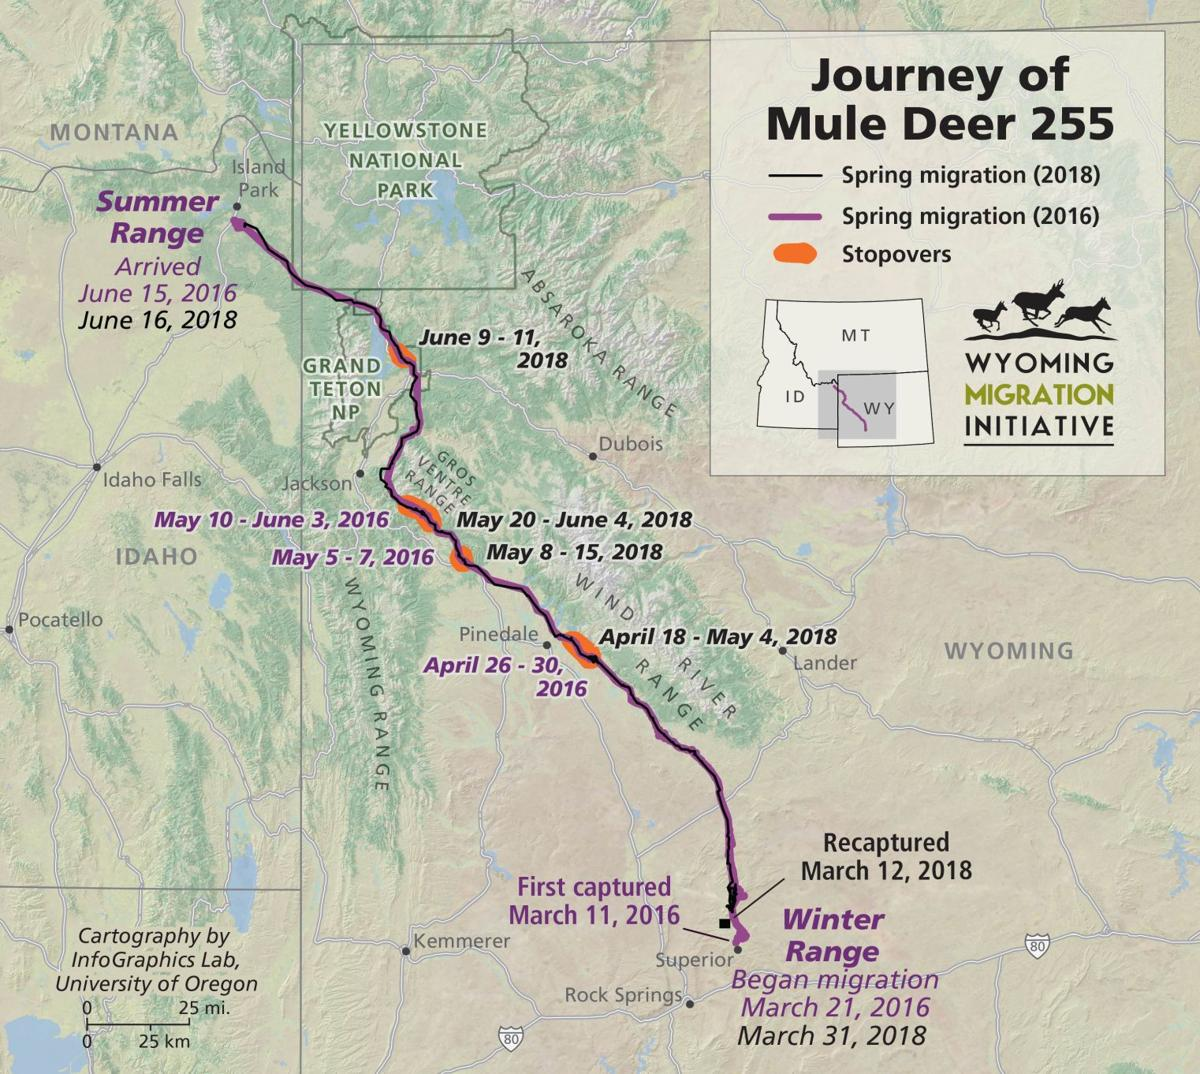 Epic Wyoming mule deer migration documented again confirming the